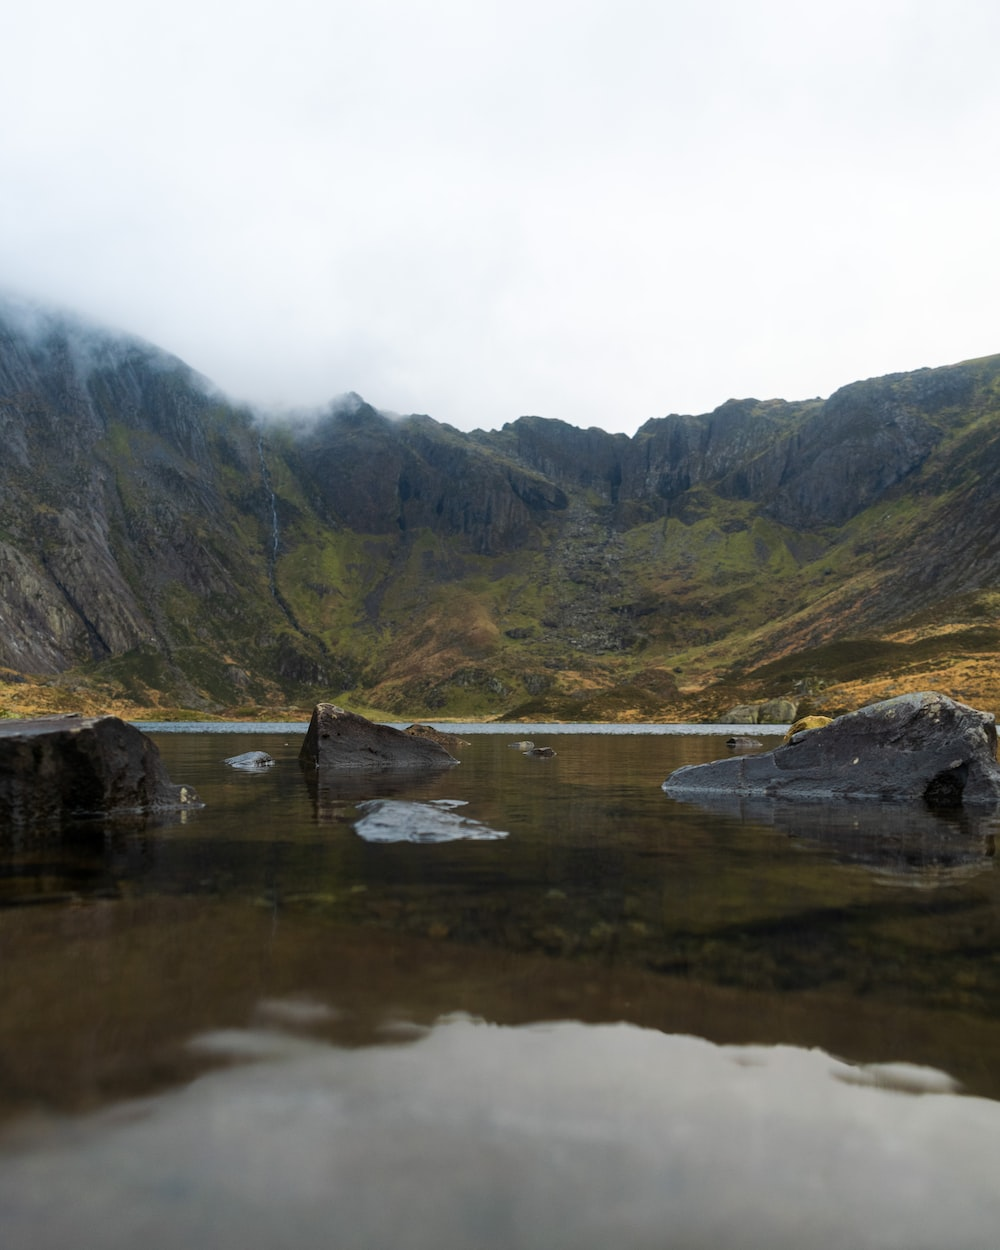 gray rock formations on body of water viewing green field and mountain under white sky